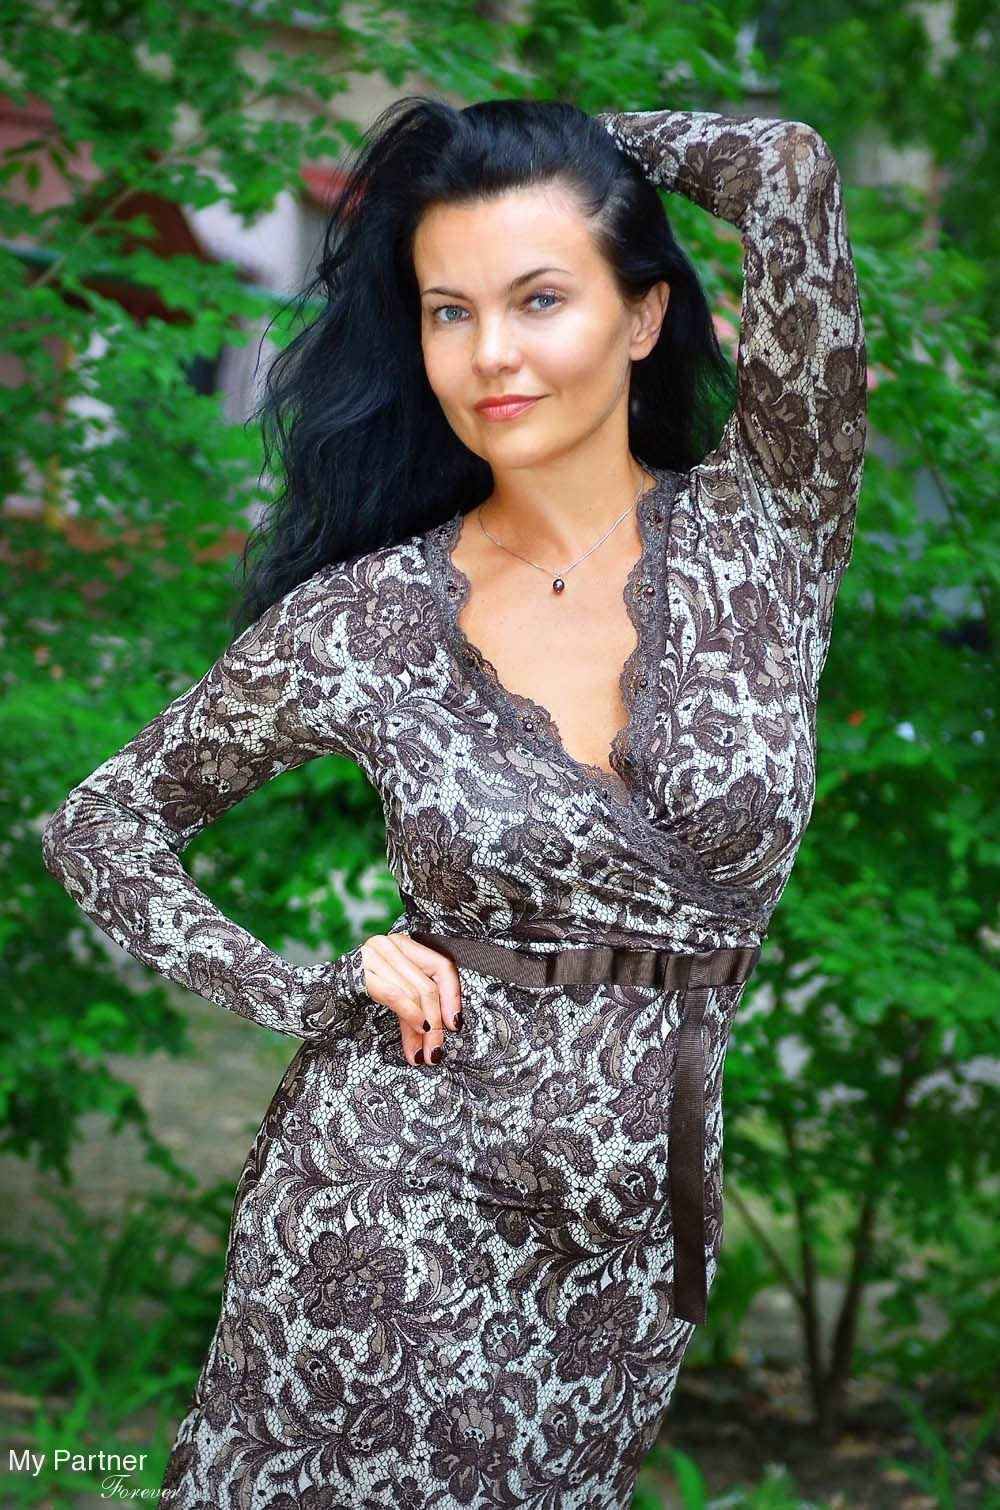 Meet Charming Ukrainian Girl Olga from Kharkov, Ukraine